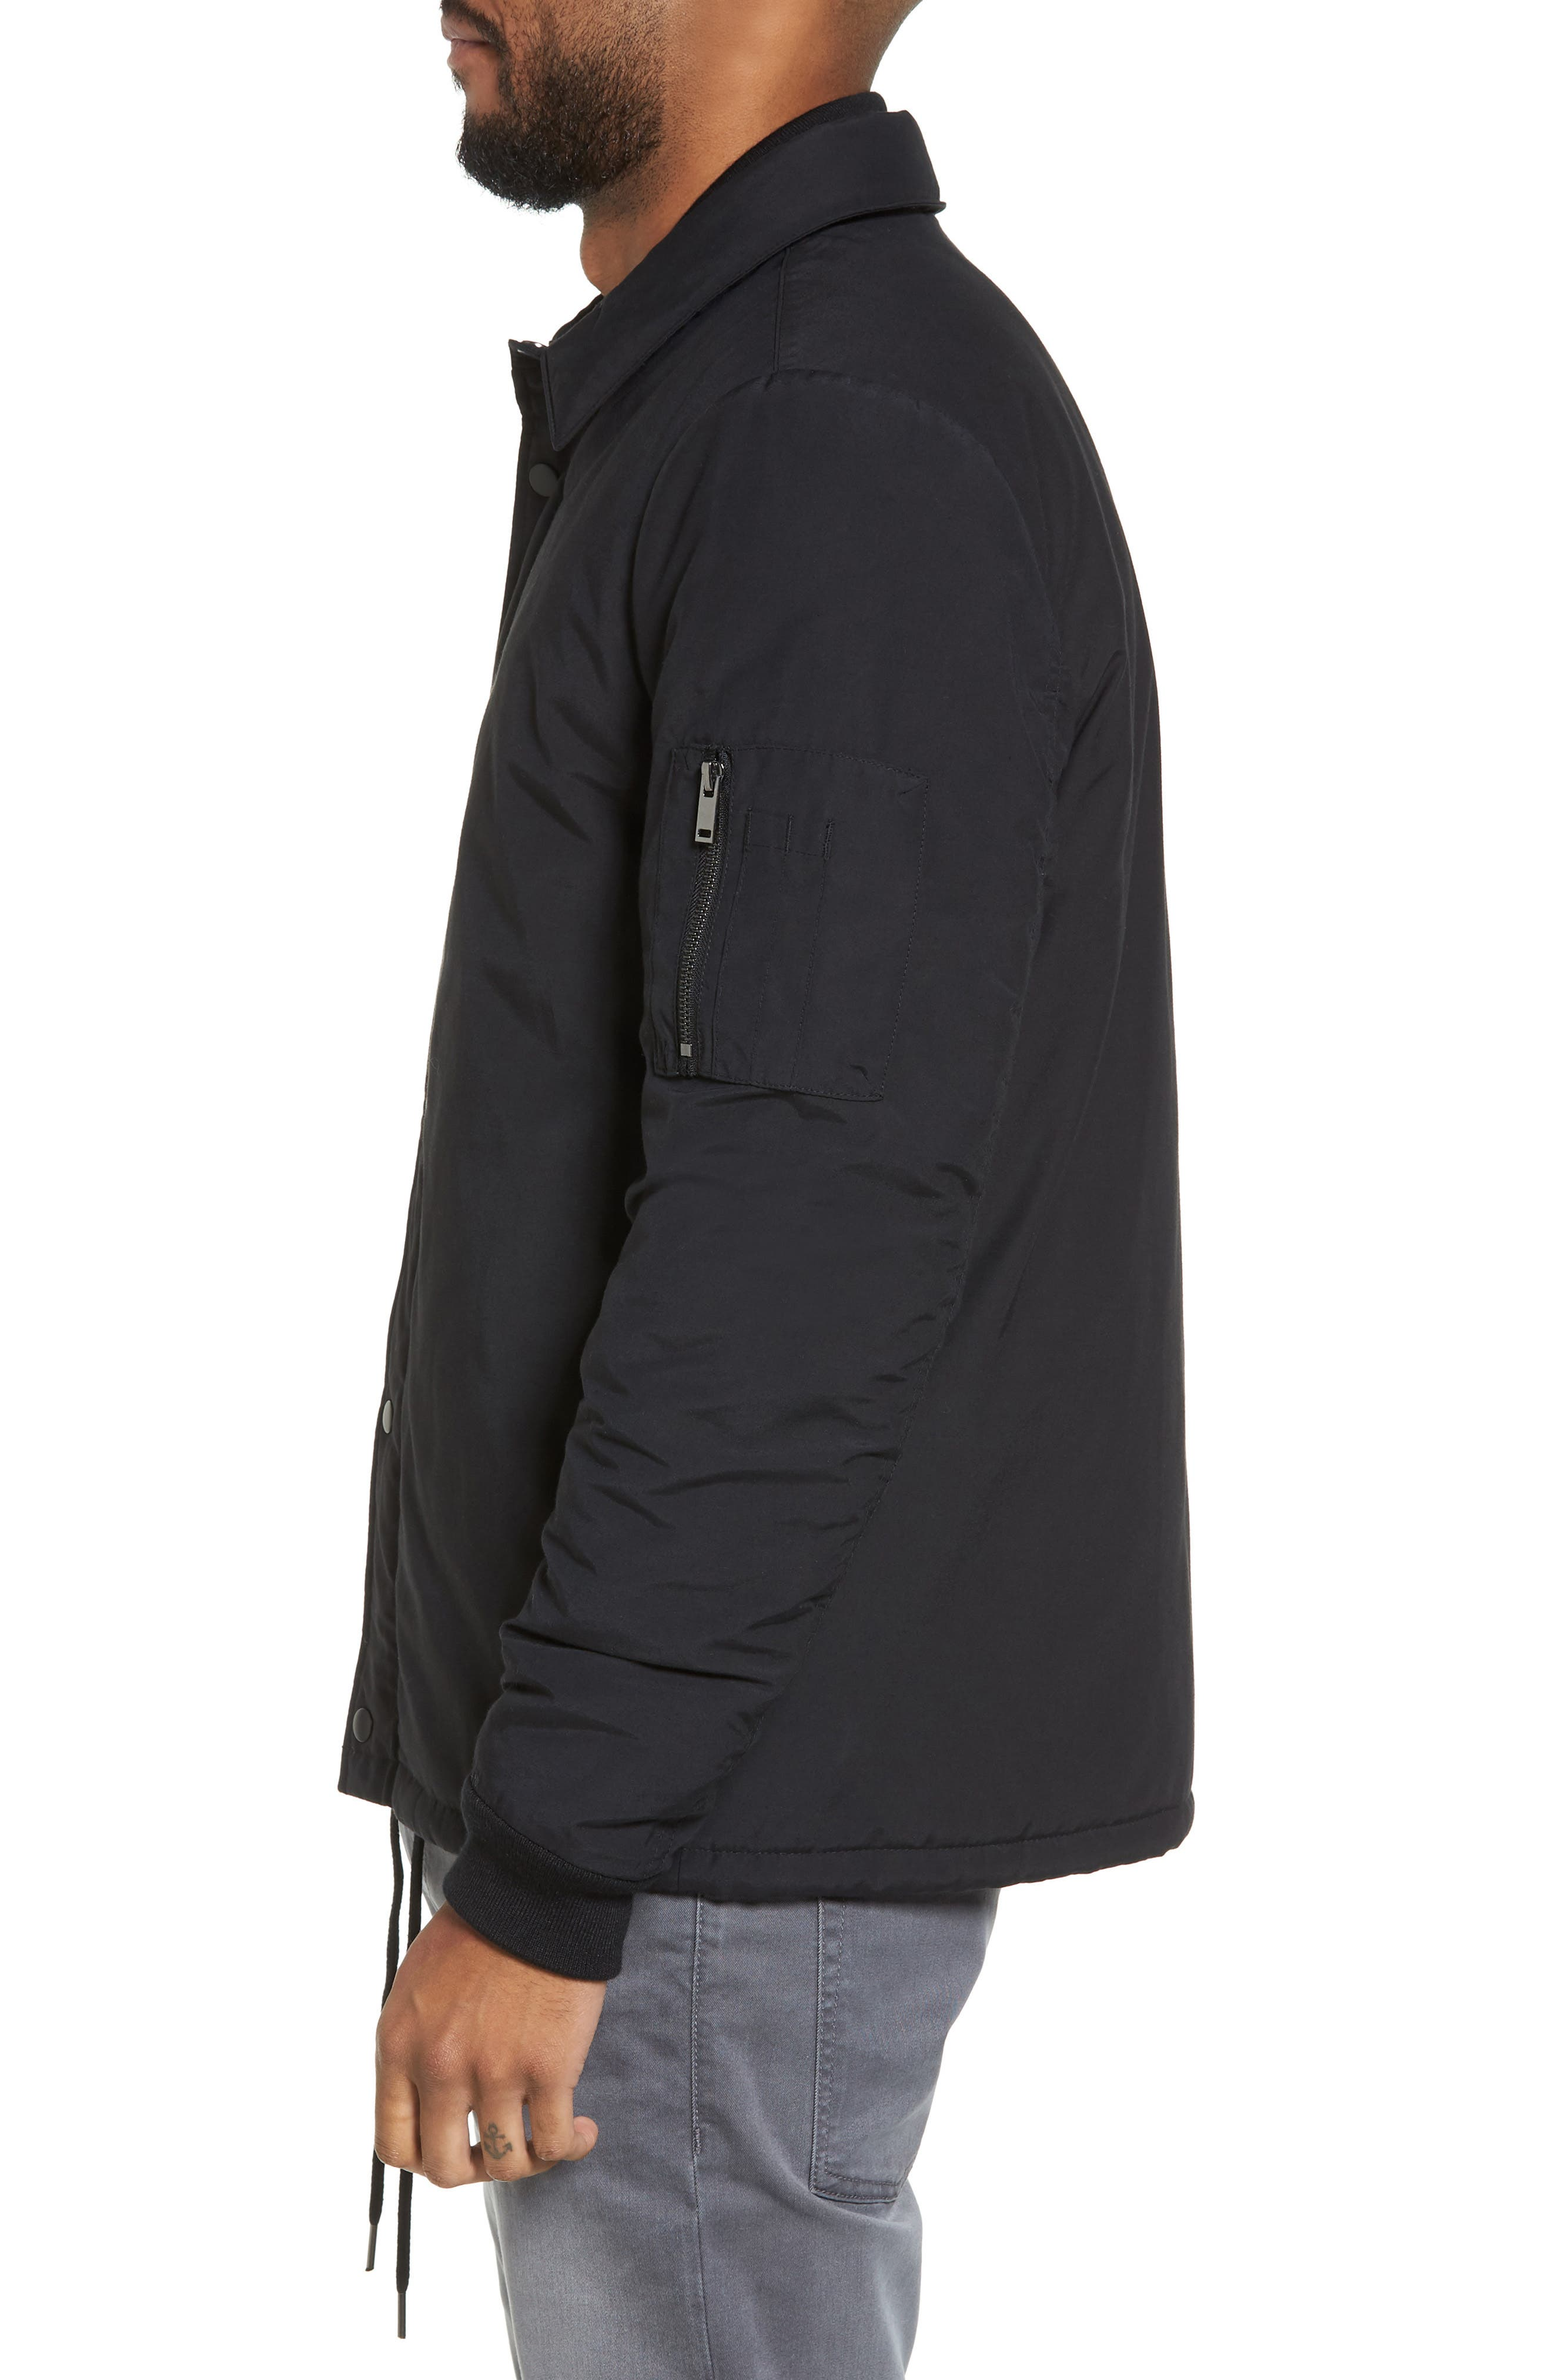 Collared Bomber Jacket,                             Alternate thumbnail 3, color,                             001